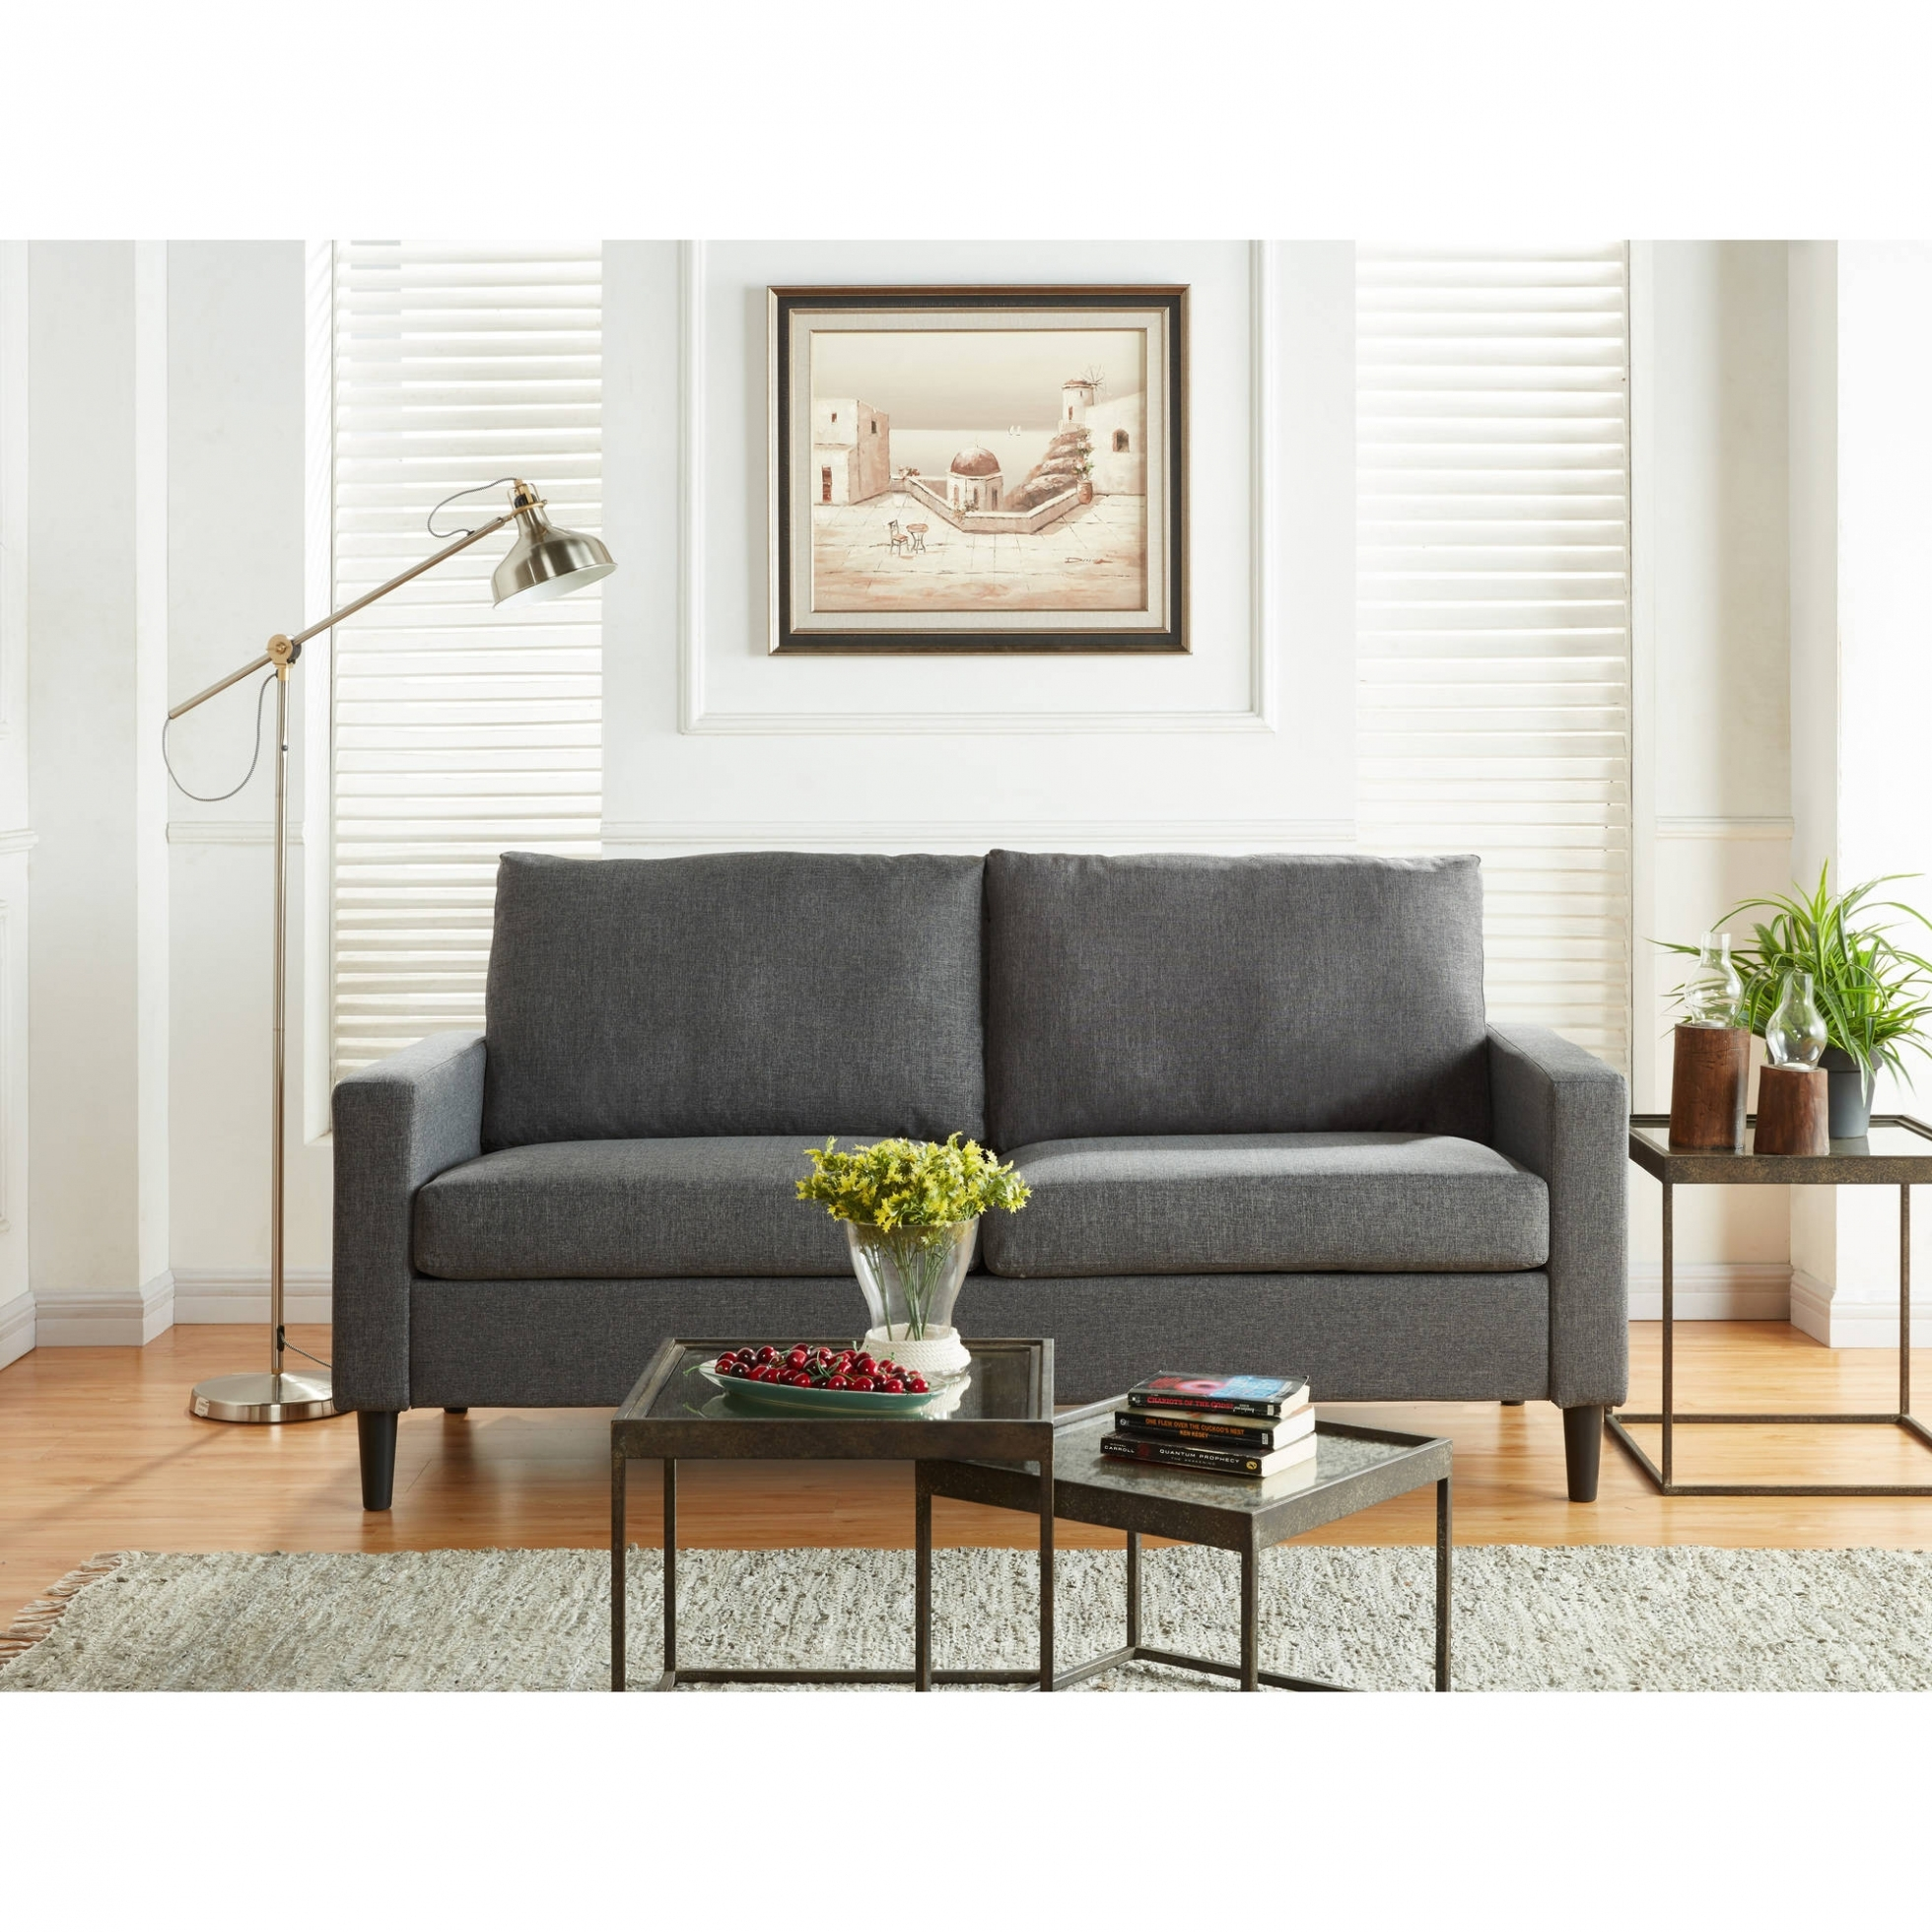 Sofa: Sofas & Couches Walmart In Cheap Sectional Sofas Under 400 in Sectional Sofas Under 400 (Image 14 of 15)